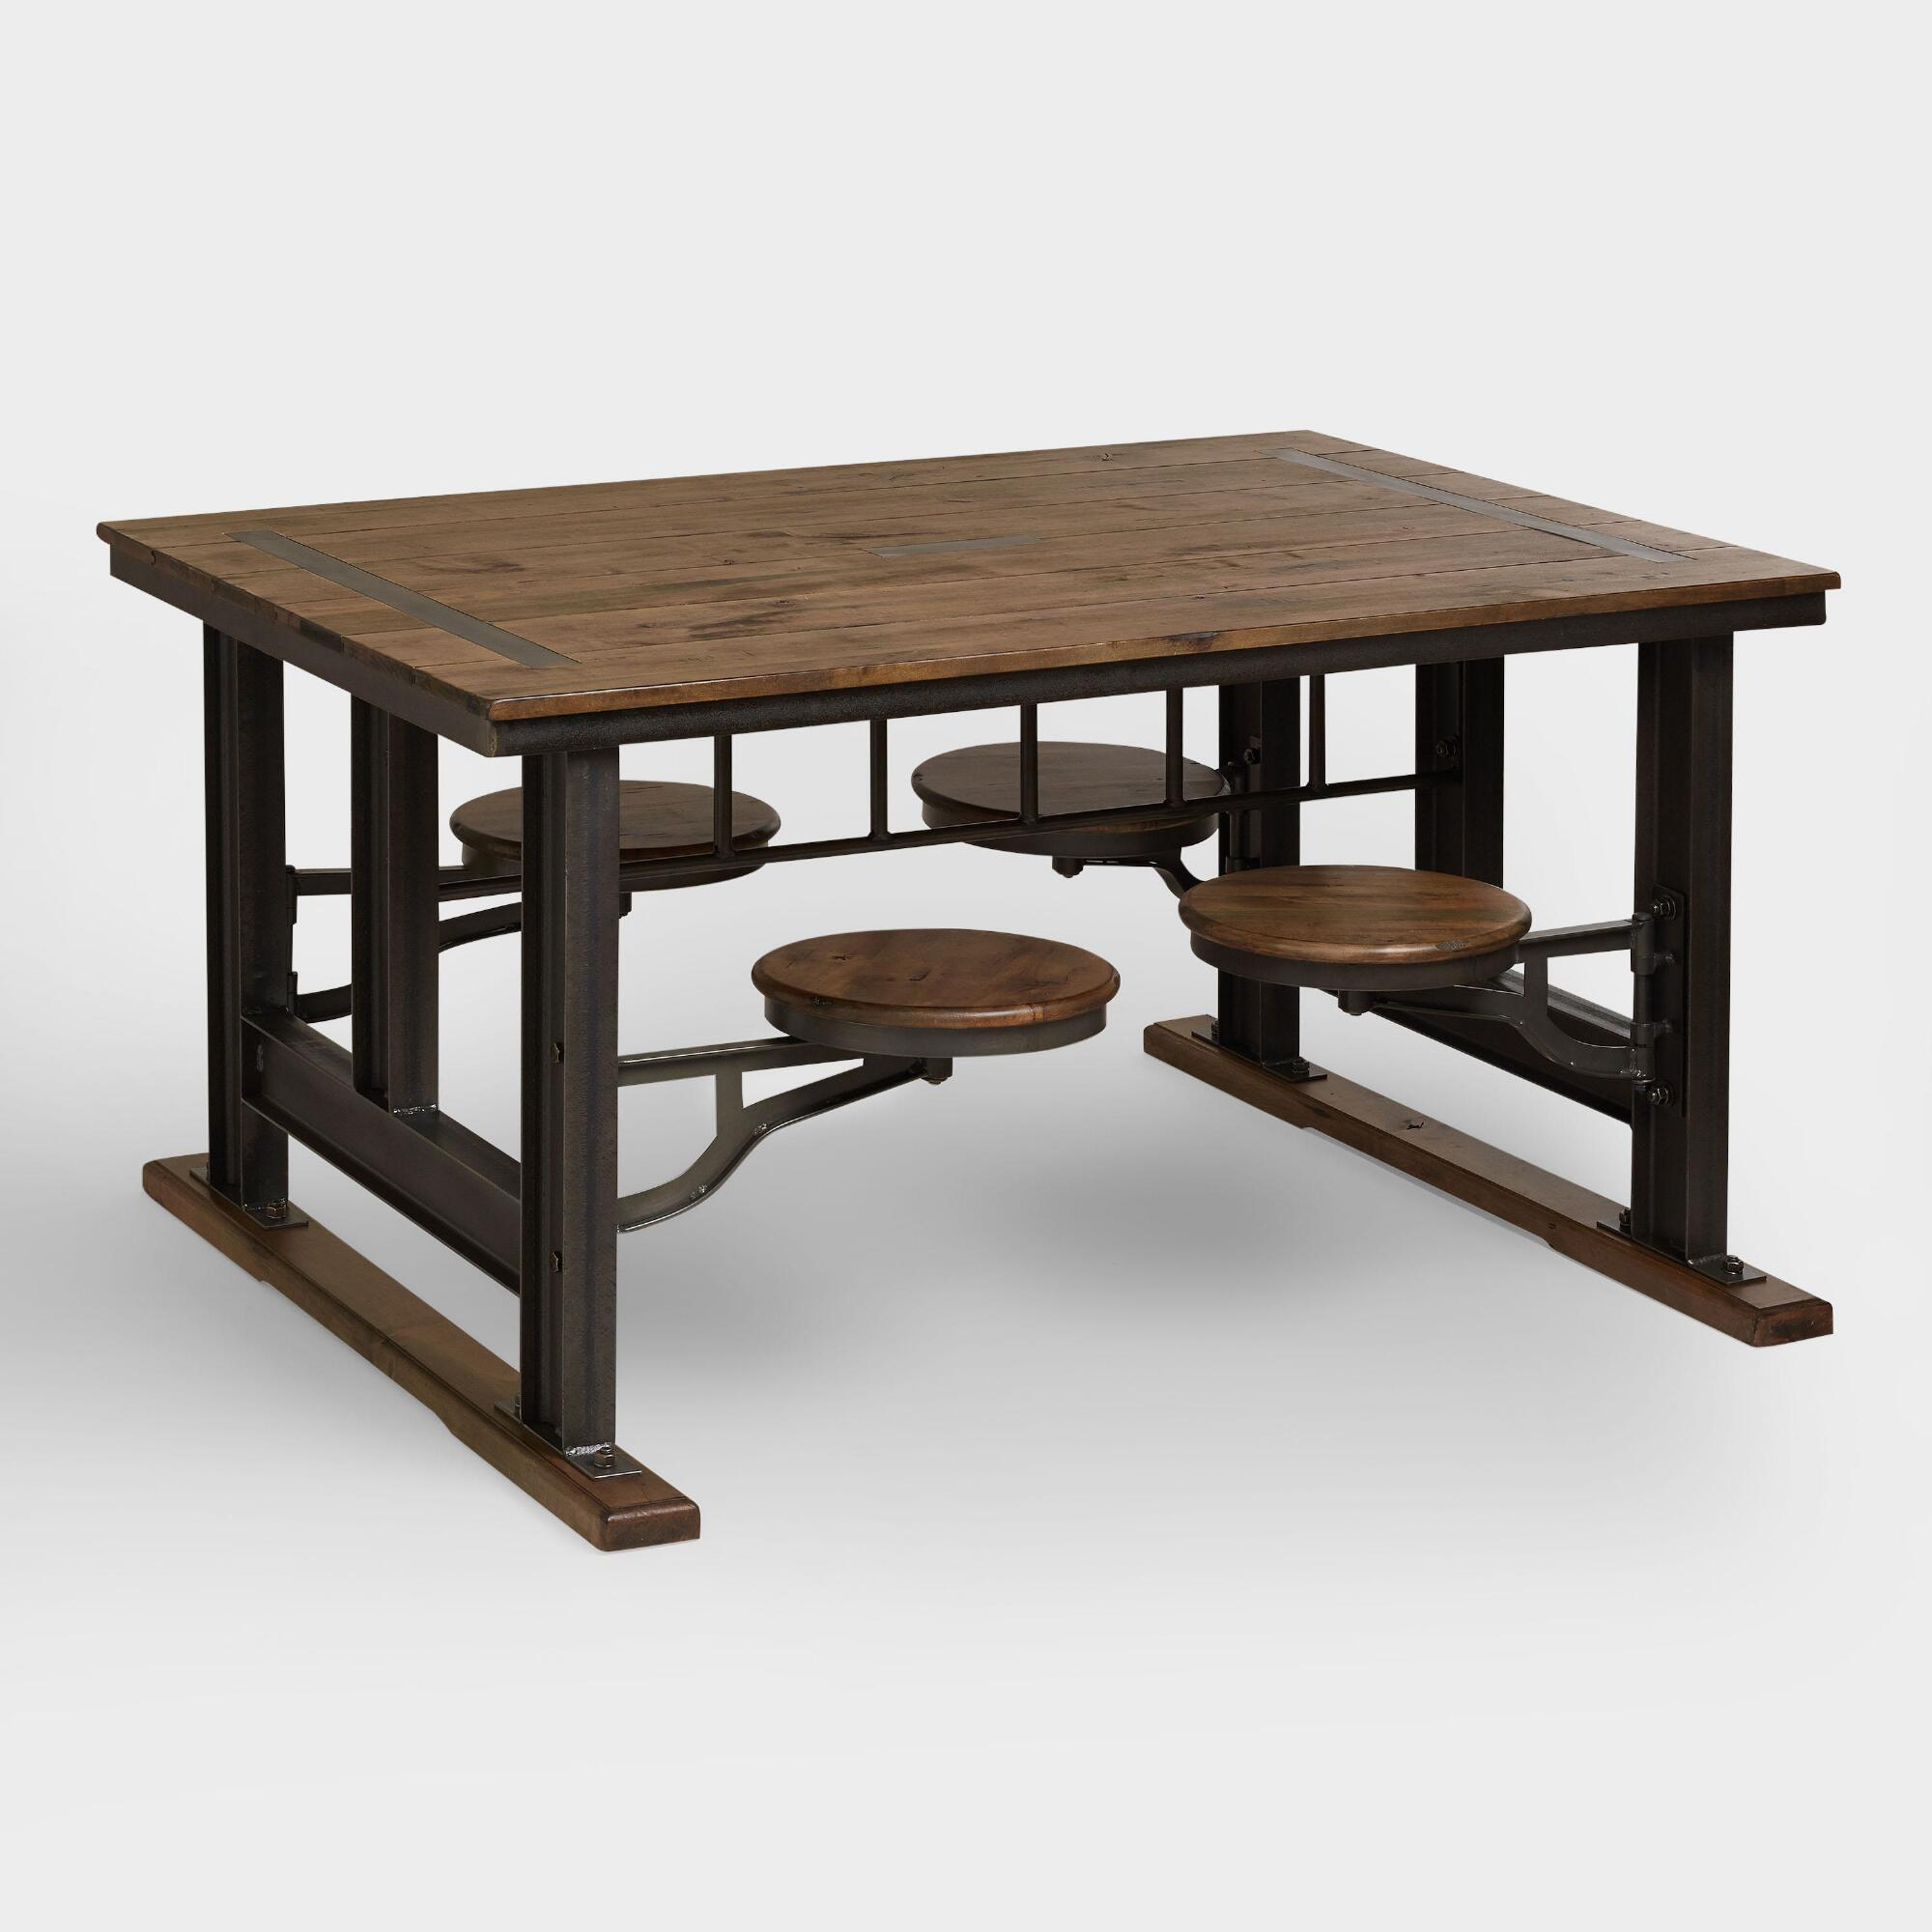 industrial furniture rustic chic world market iipsrv fcgi extra small accent tables galvin cafeteria table pier one imports coupons unfinished round dining designs wood glass and